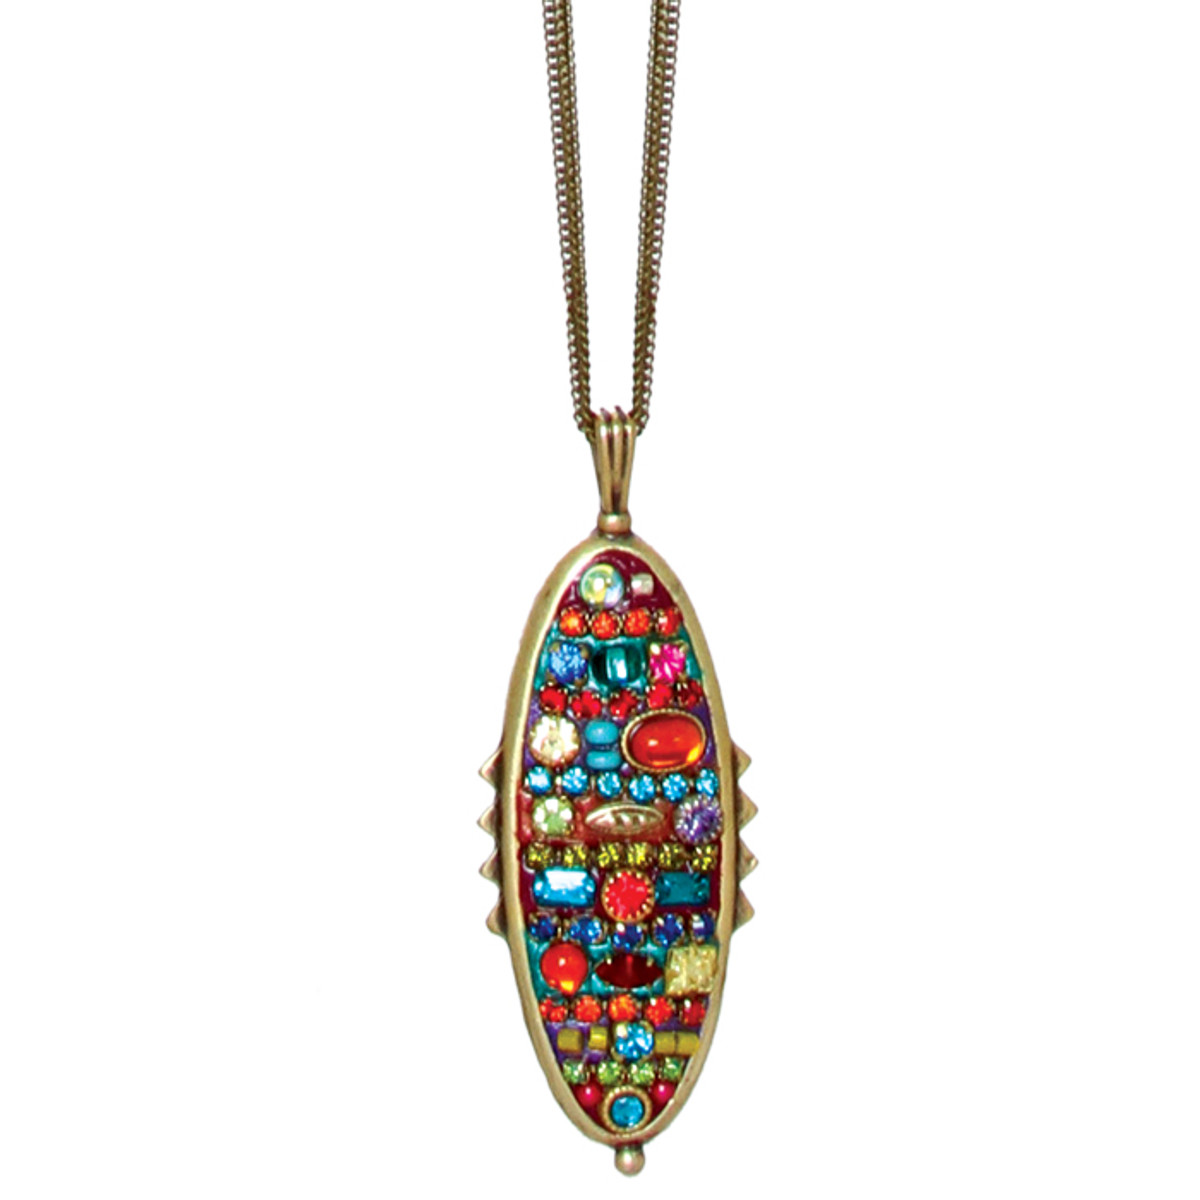 Michal Golan Necklace - Multibright Spiked Oval Thin Chains